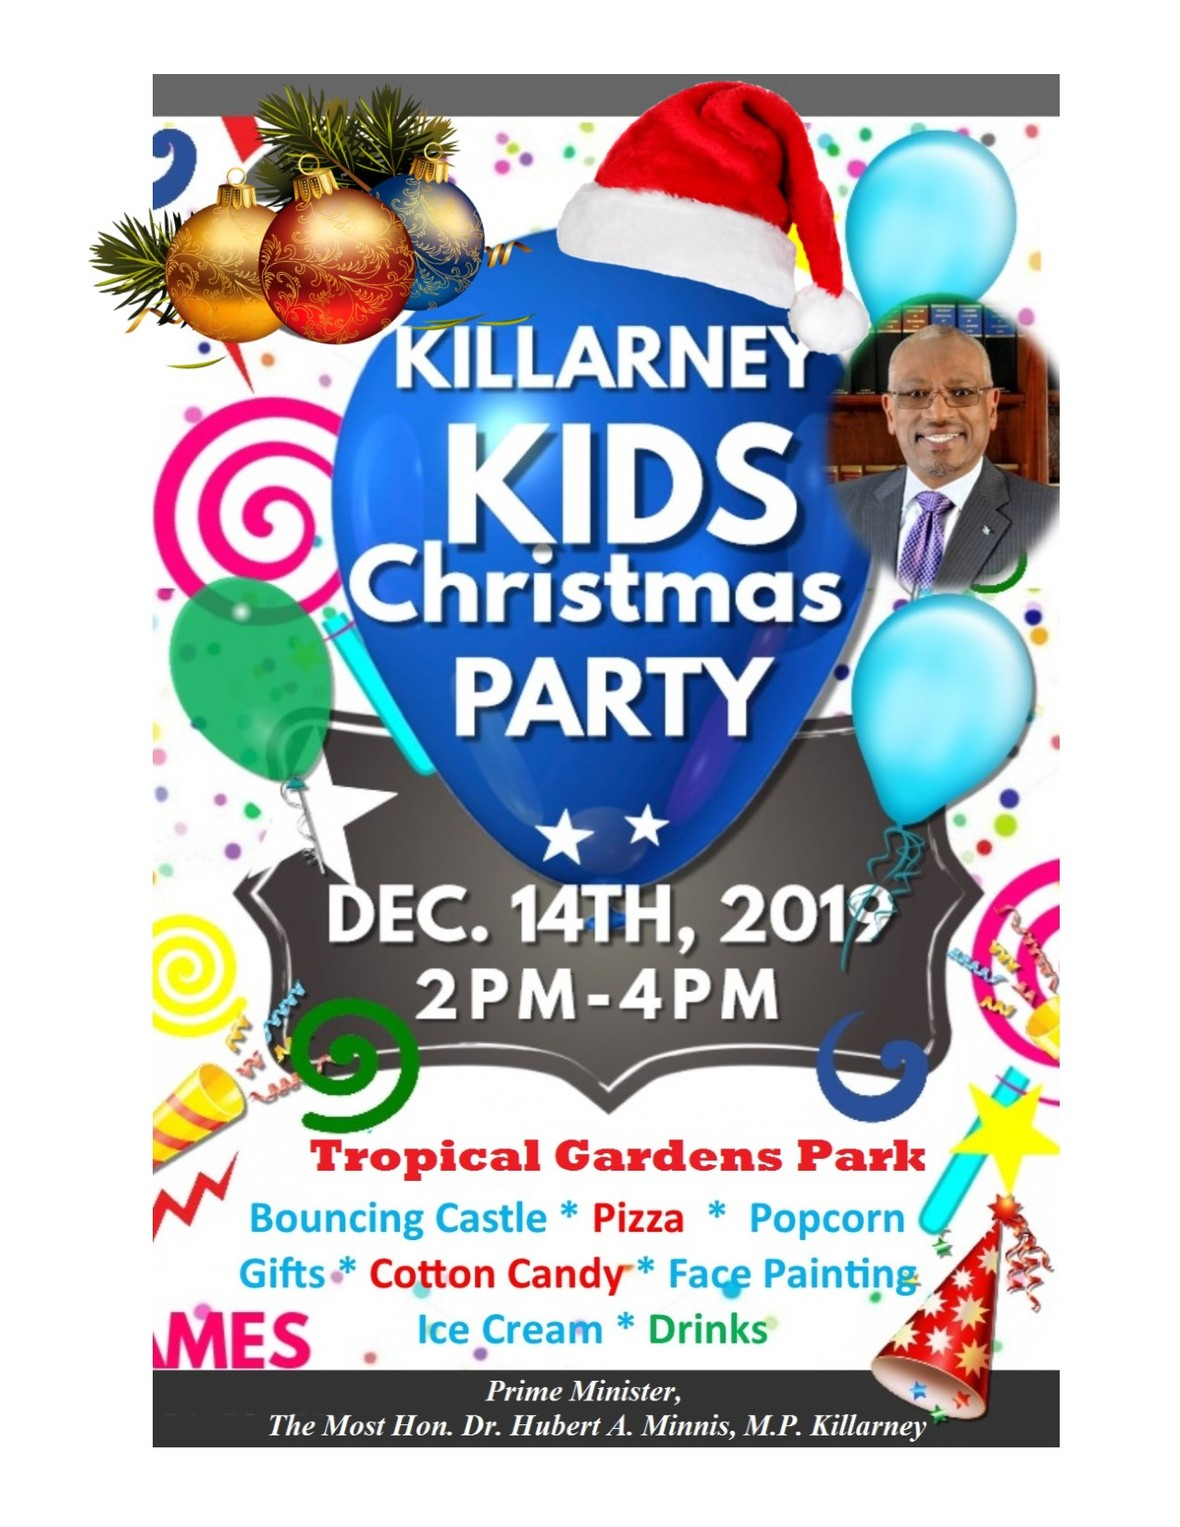 Killarney Kids Christmas Party